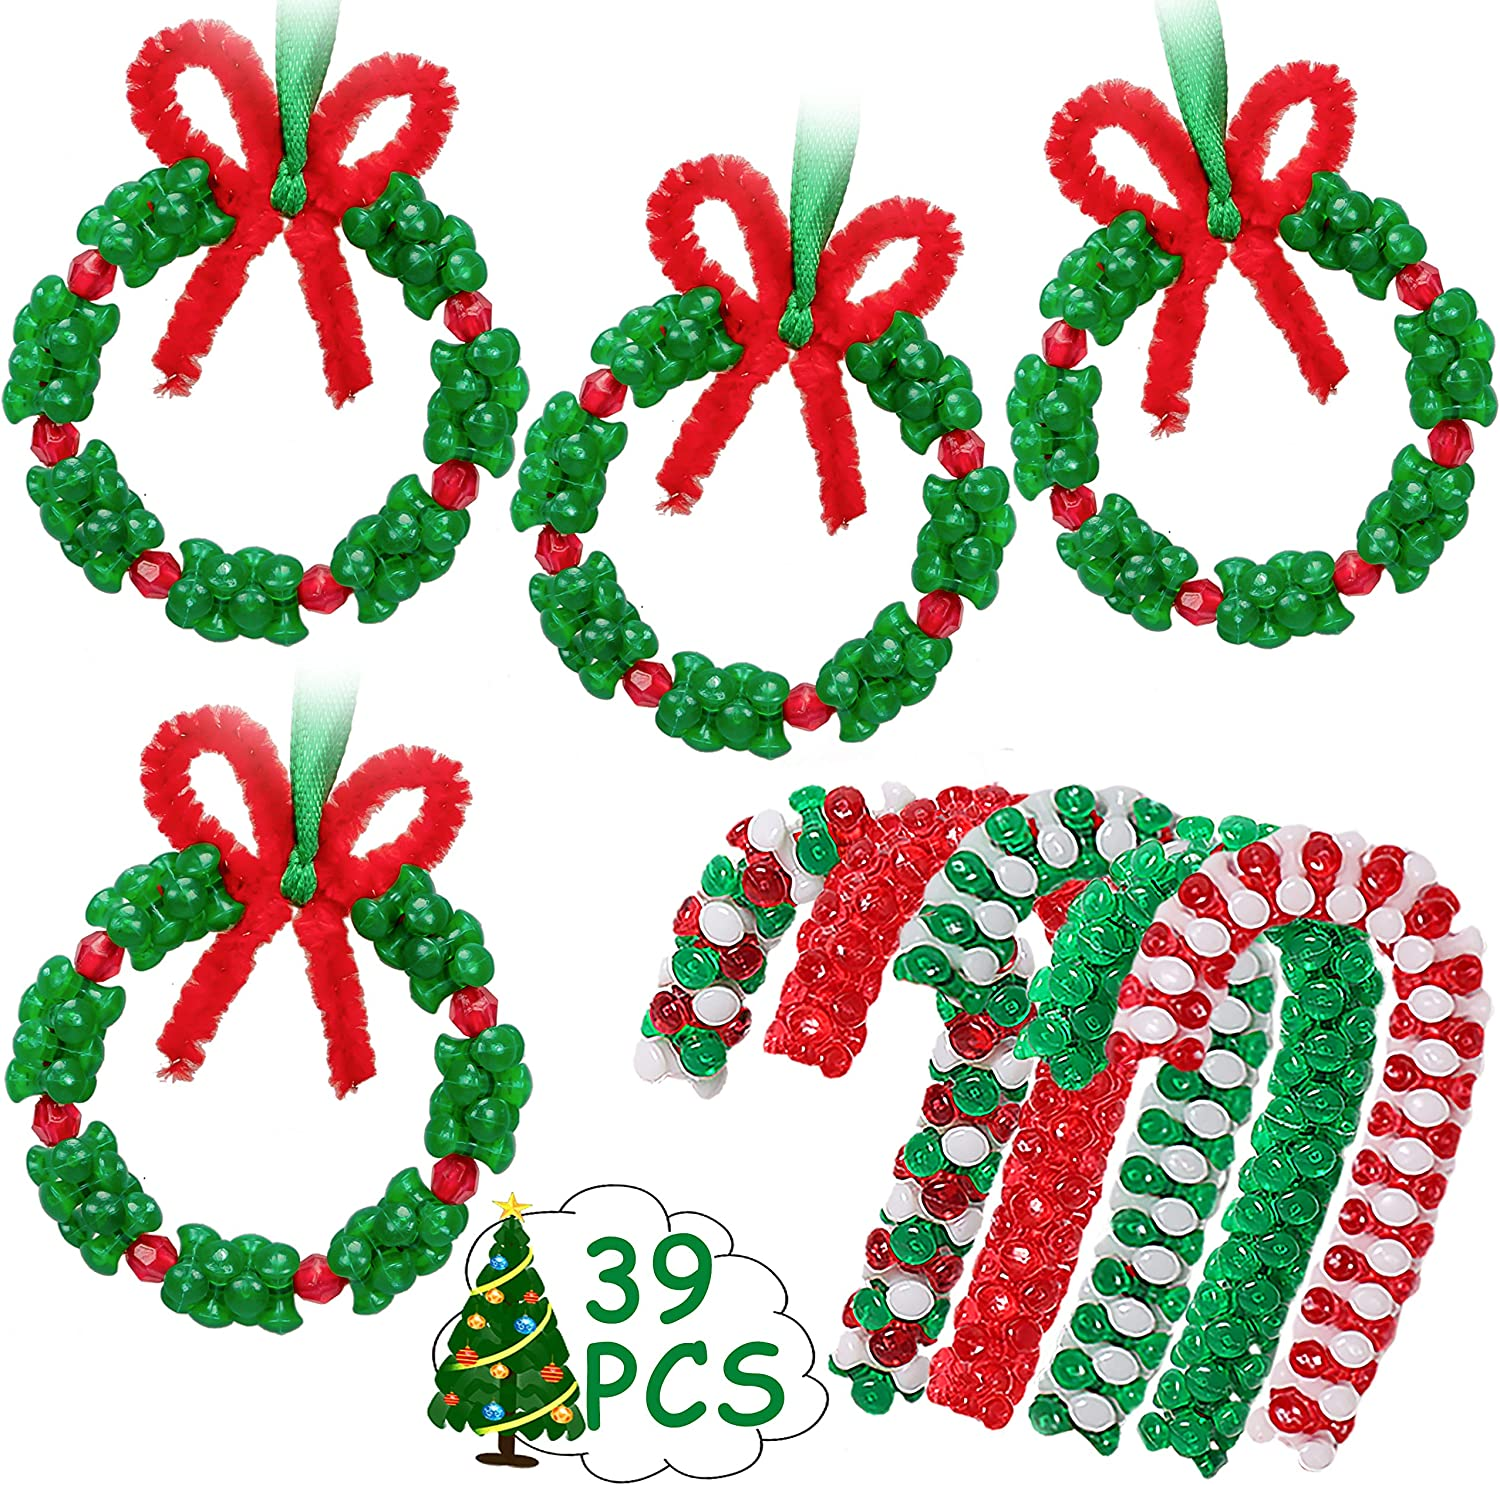 Christmas Beaded Ornament Kit - Xmas Party Craft Wreath Candy Cane Holiday Tree Decorations Kids Supplies, 39 Pieces